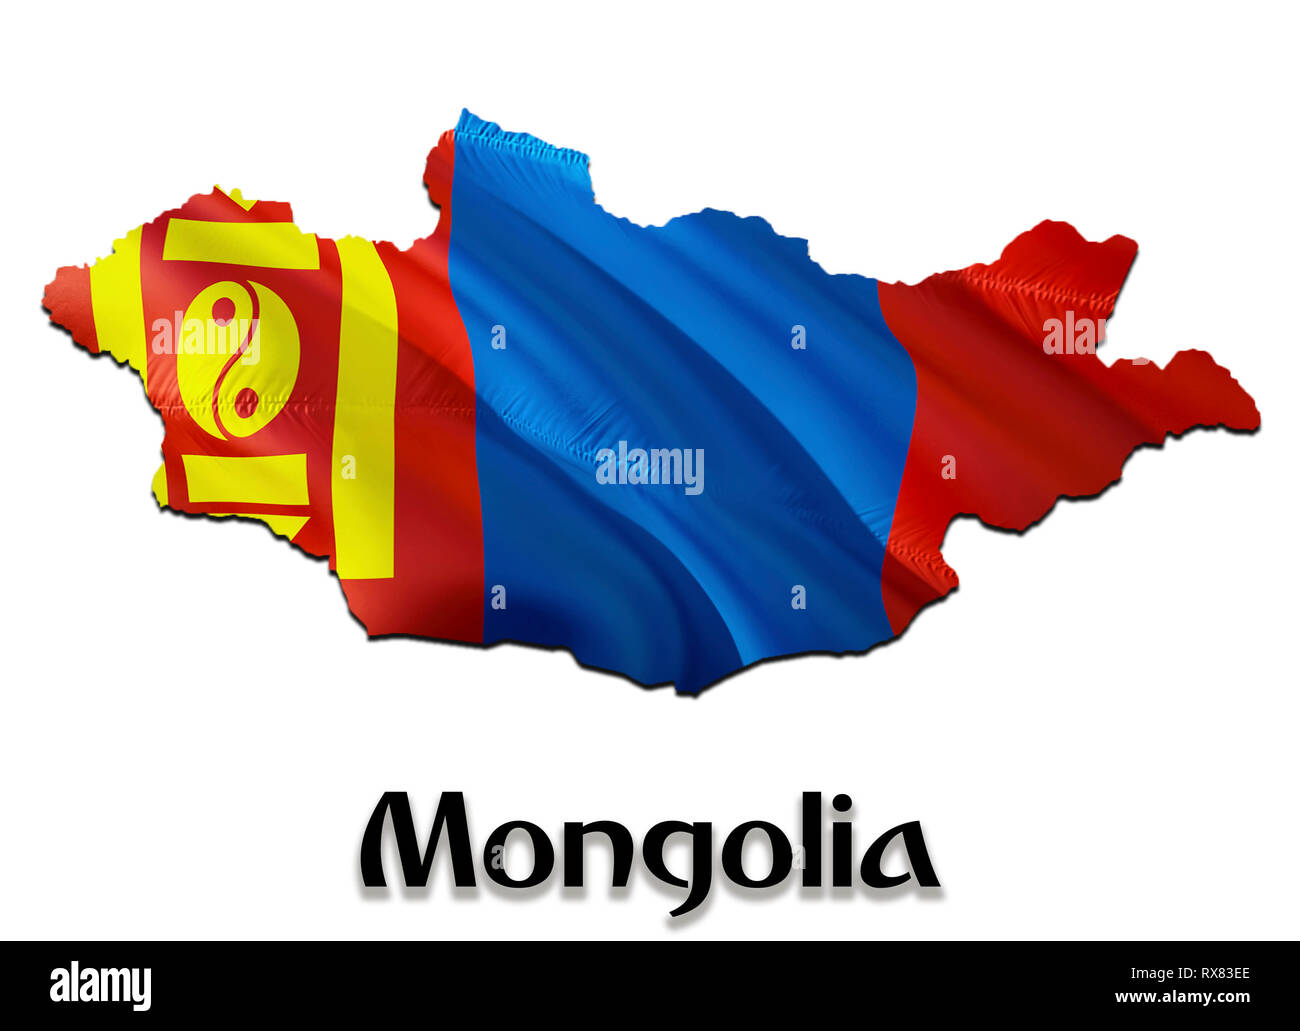 Mongolia Map Flag. 3D rendering Mongolia map and flag on Asia map. The national symbol of Mongolia. Ulaanbaatar flag on Asia background. National Mong - Stock Image